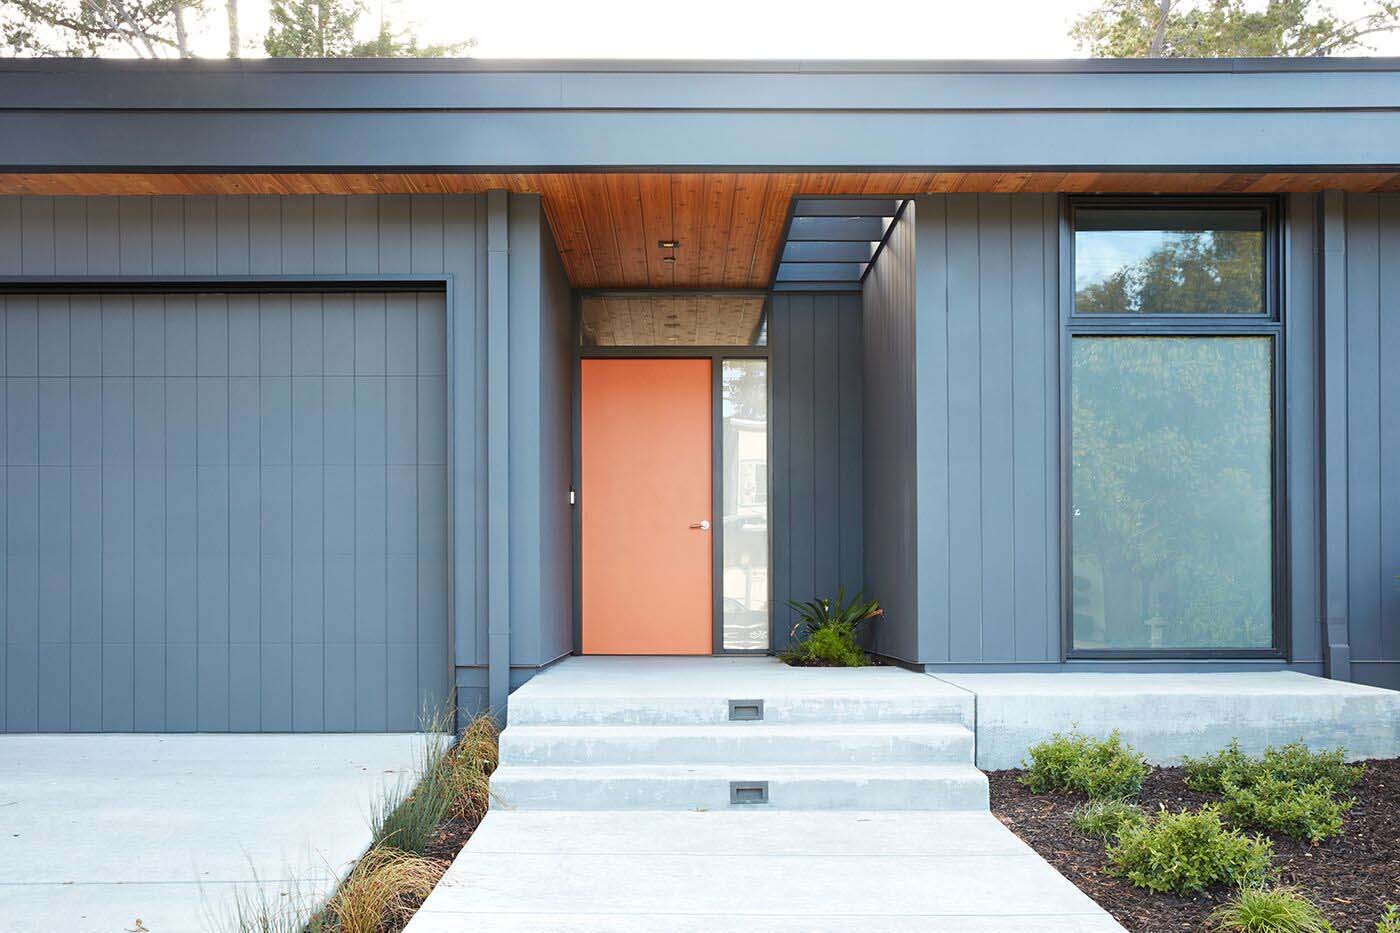 glass-wall-house-klopf-architecture-17-1-kindesign